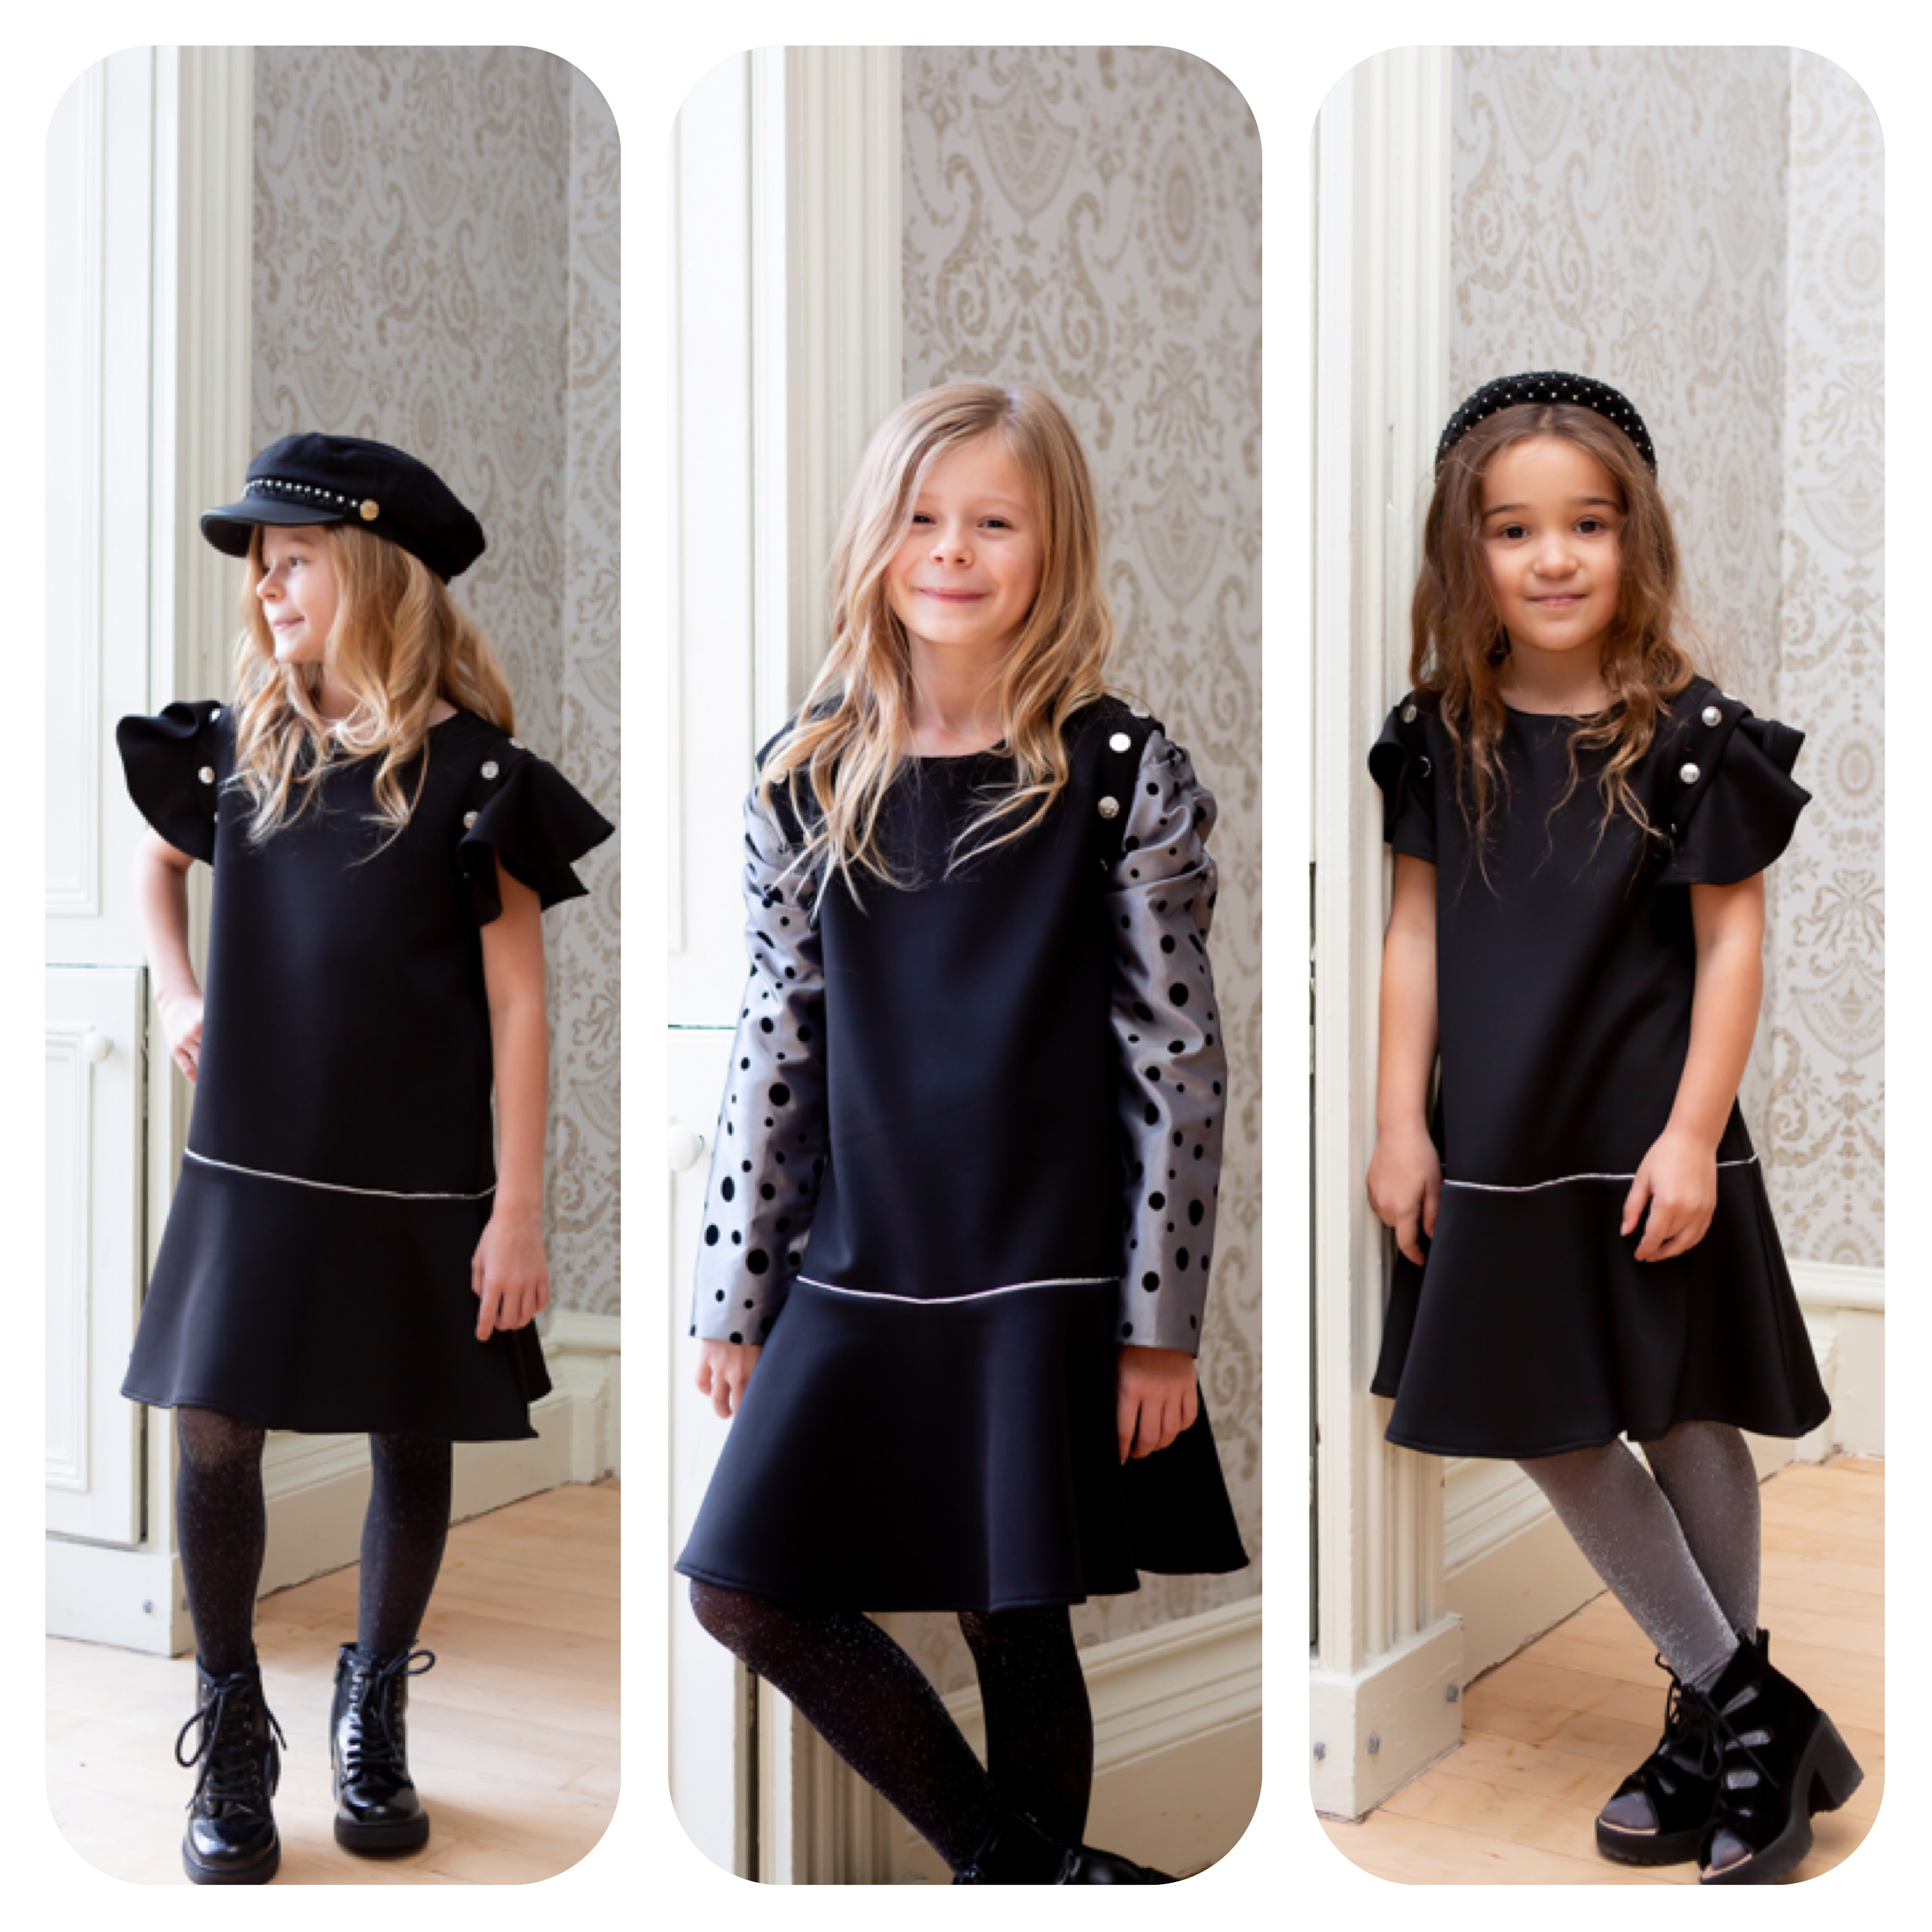 3 image of girls in LBD